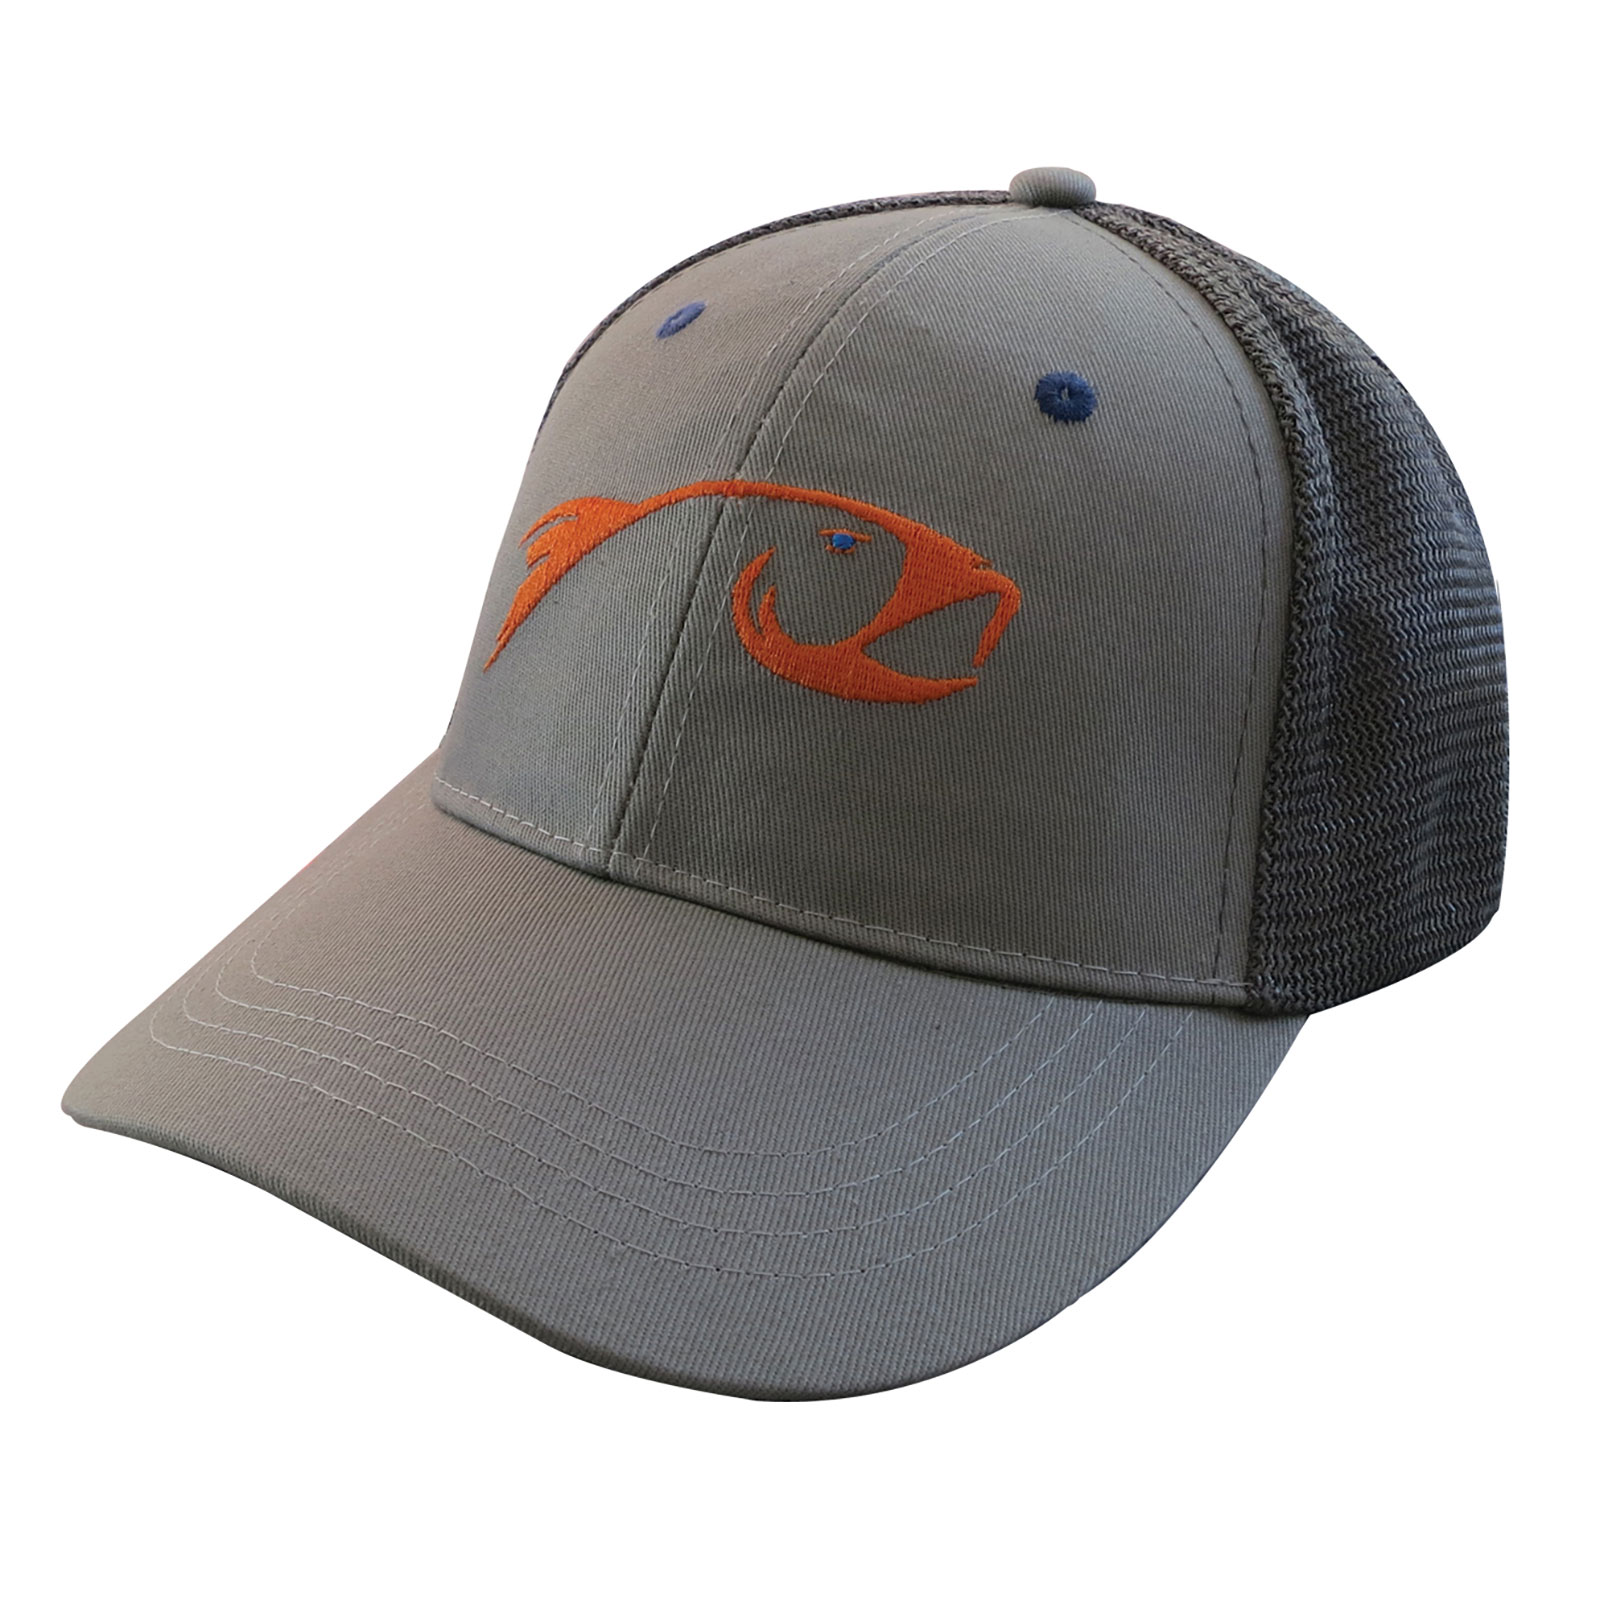 rising fly fishing trucker baseball cap hat ebay